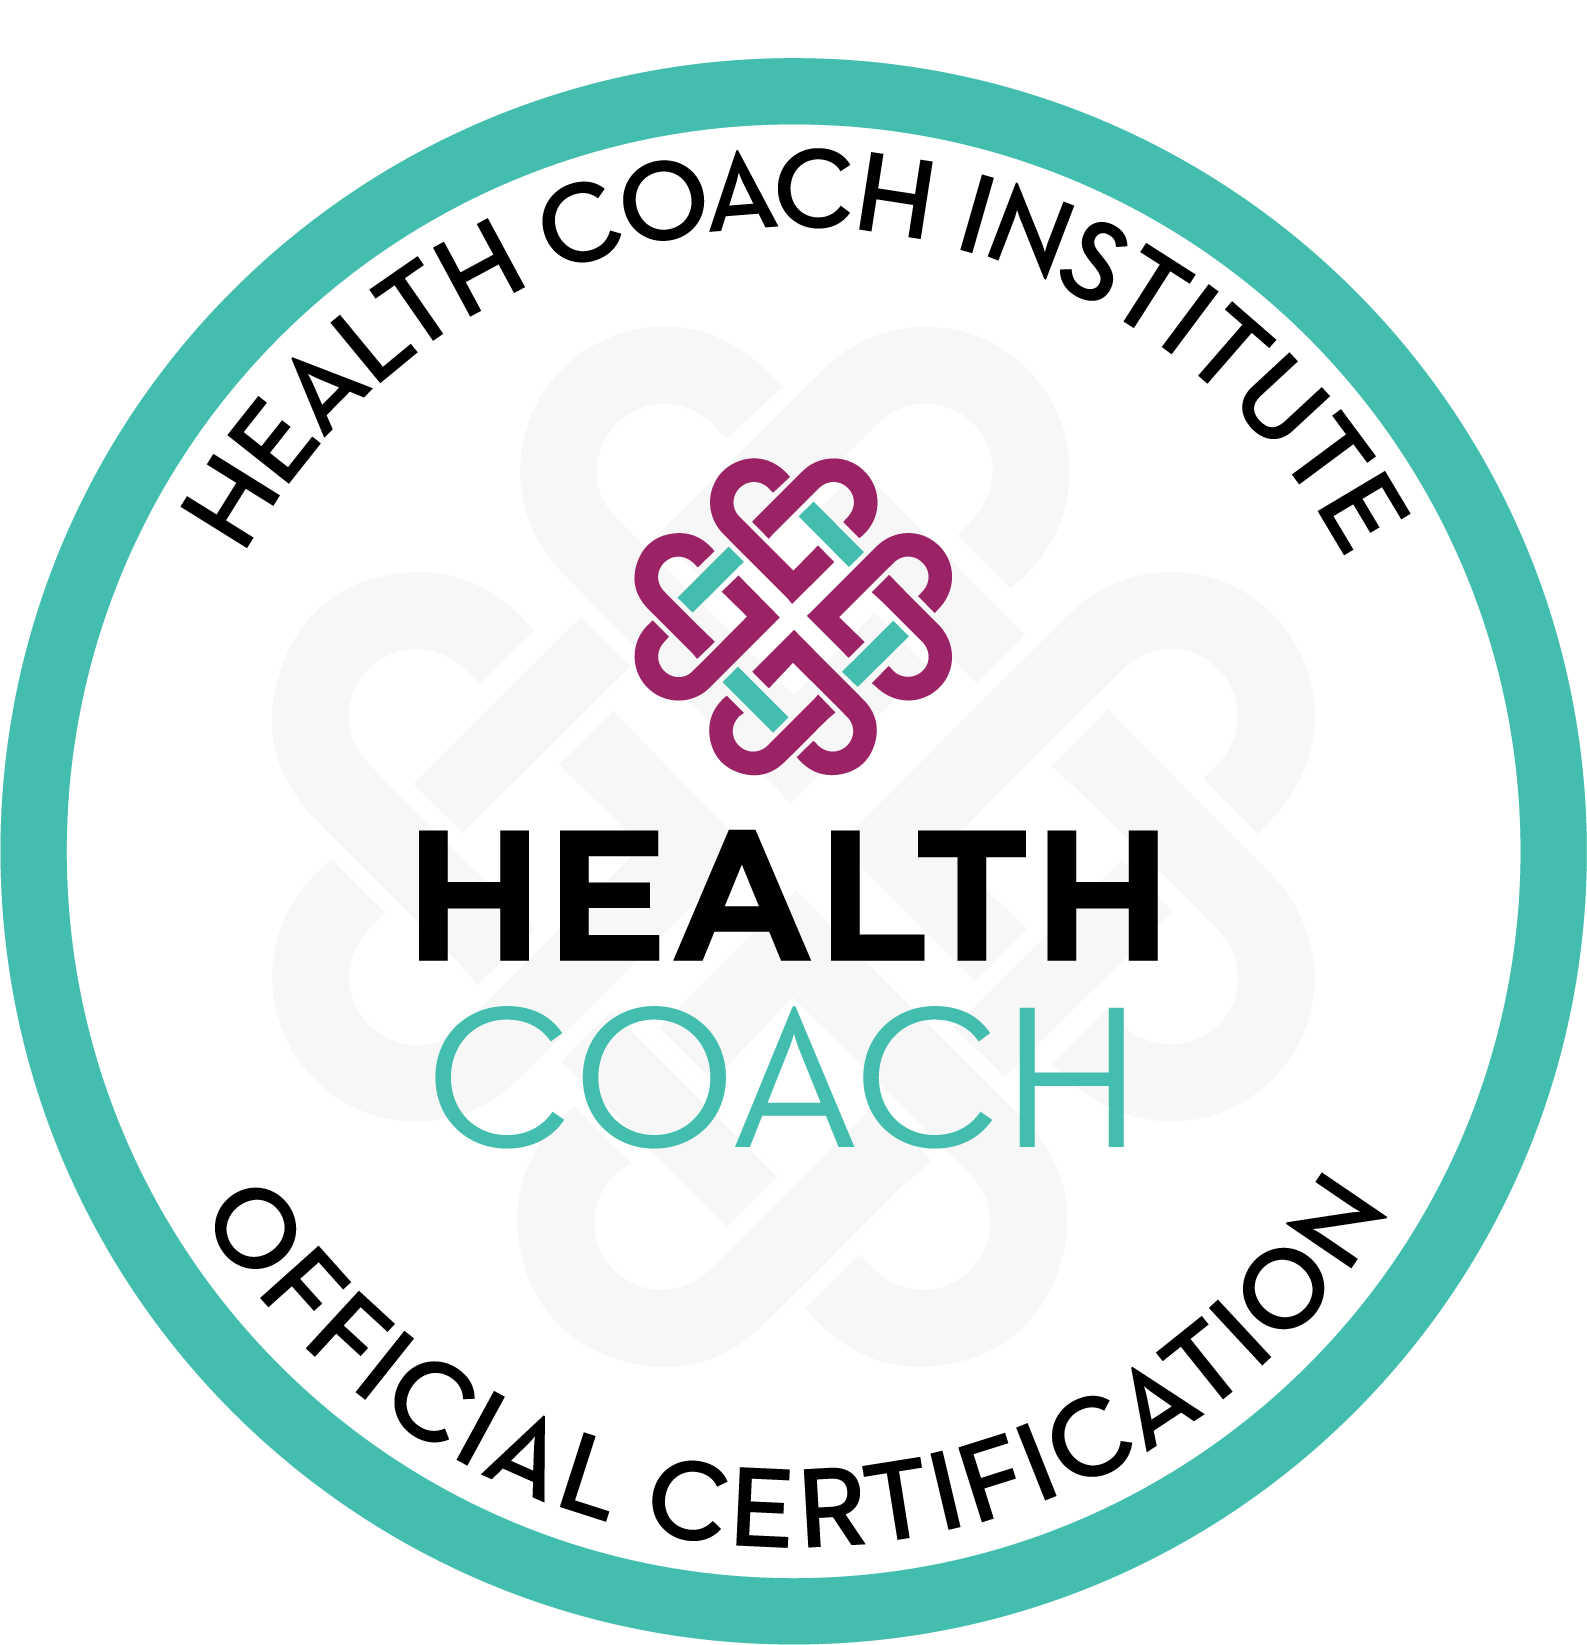 bhc_certification_seal (4).png